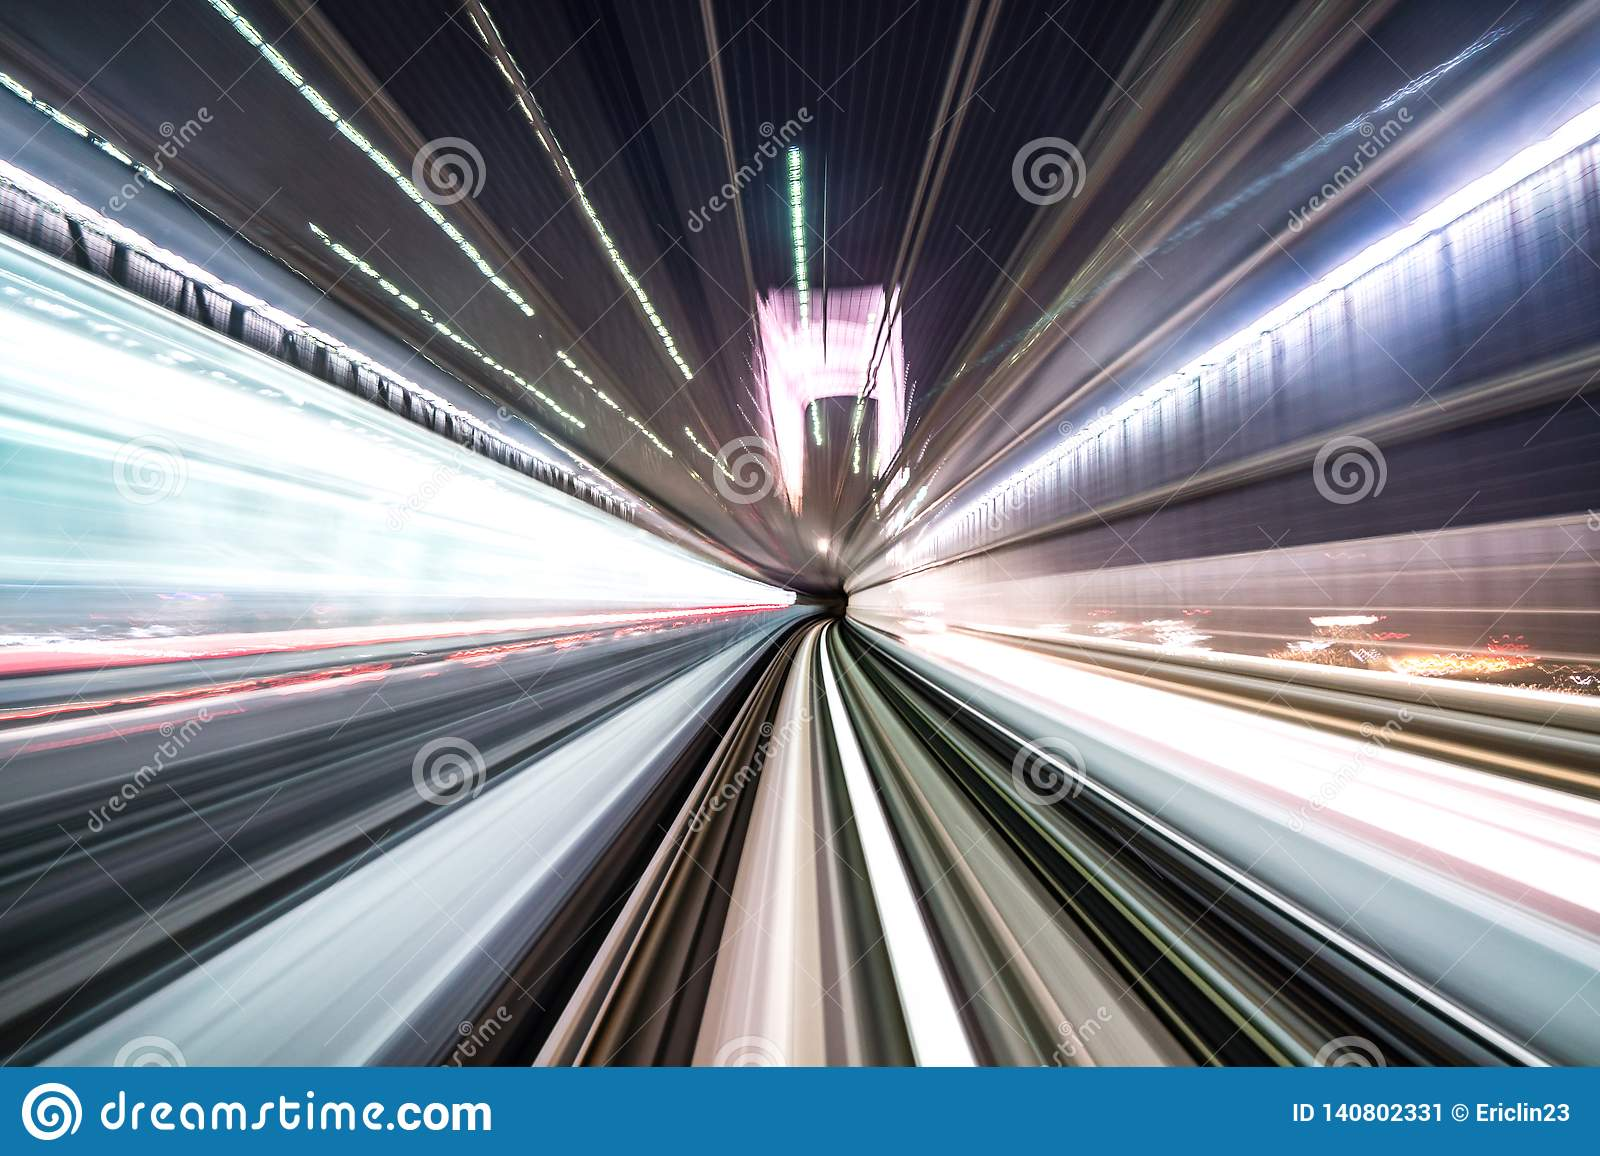 Motion blur of train moving inside tunnel with daylight in tokyo, Japan